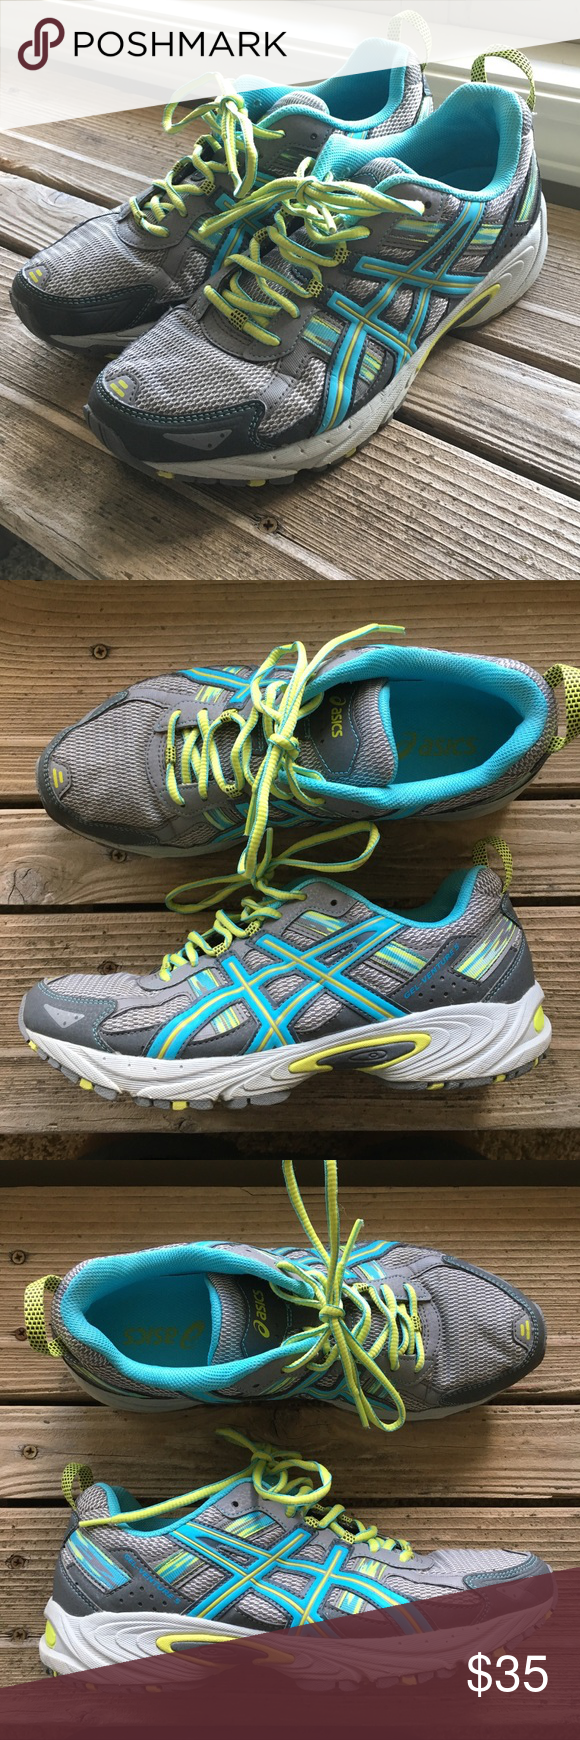 Asics Women's Gel Venture 5D Trail Running Shoes -2016 model - The GEL -Venture 5 provides great fit with rear foot cushioning and a rugged outsole which is ideal for all terrains.  -Model is T5N9N (D) - SIZE 9 1/2 US 41.5 Euro  - In almost new condition Asics Shoes Sneakers